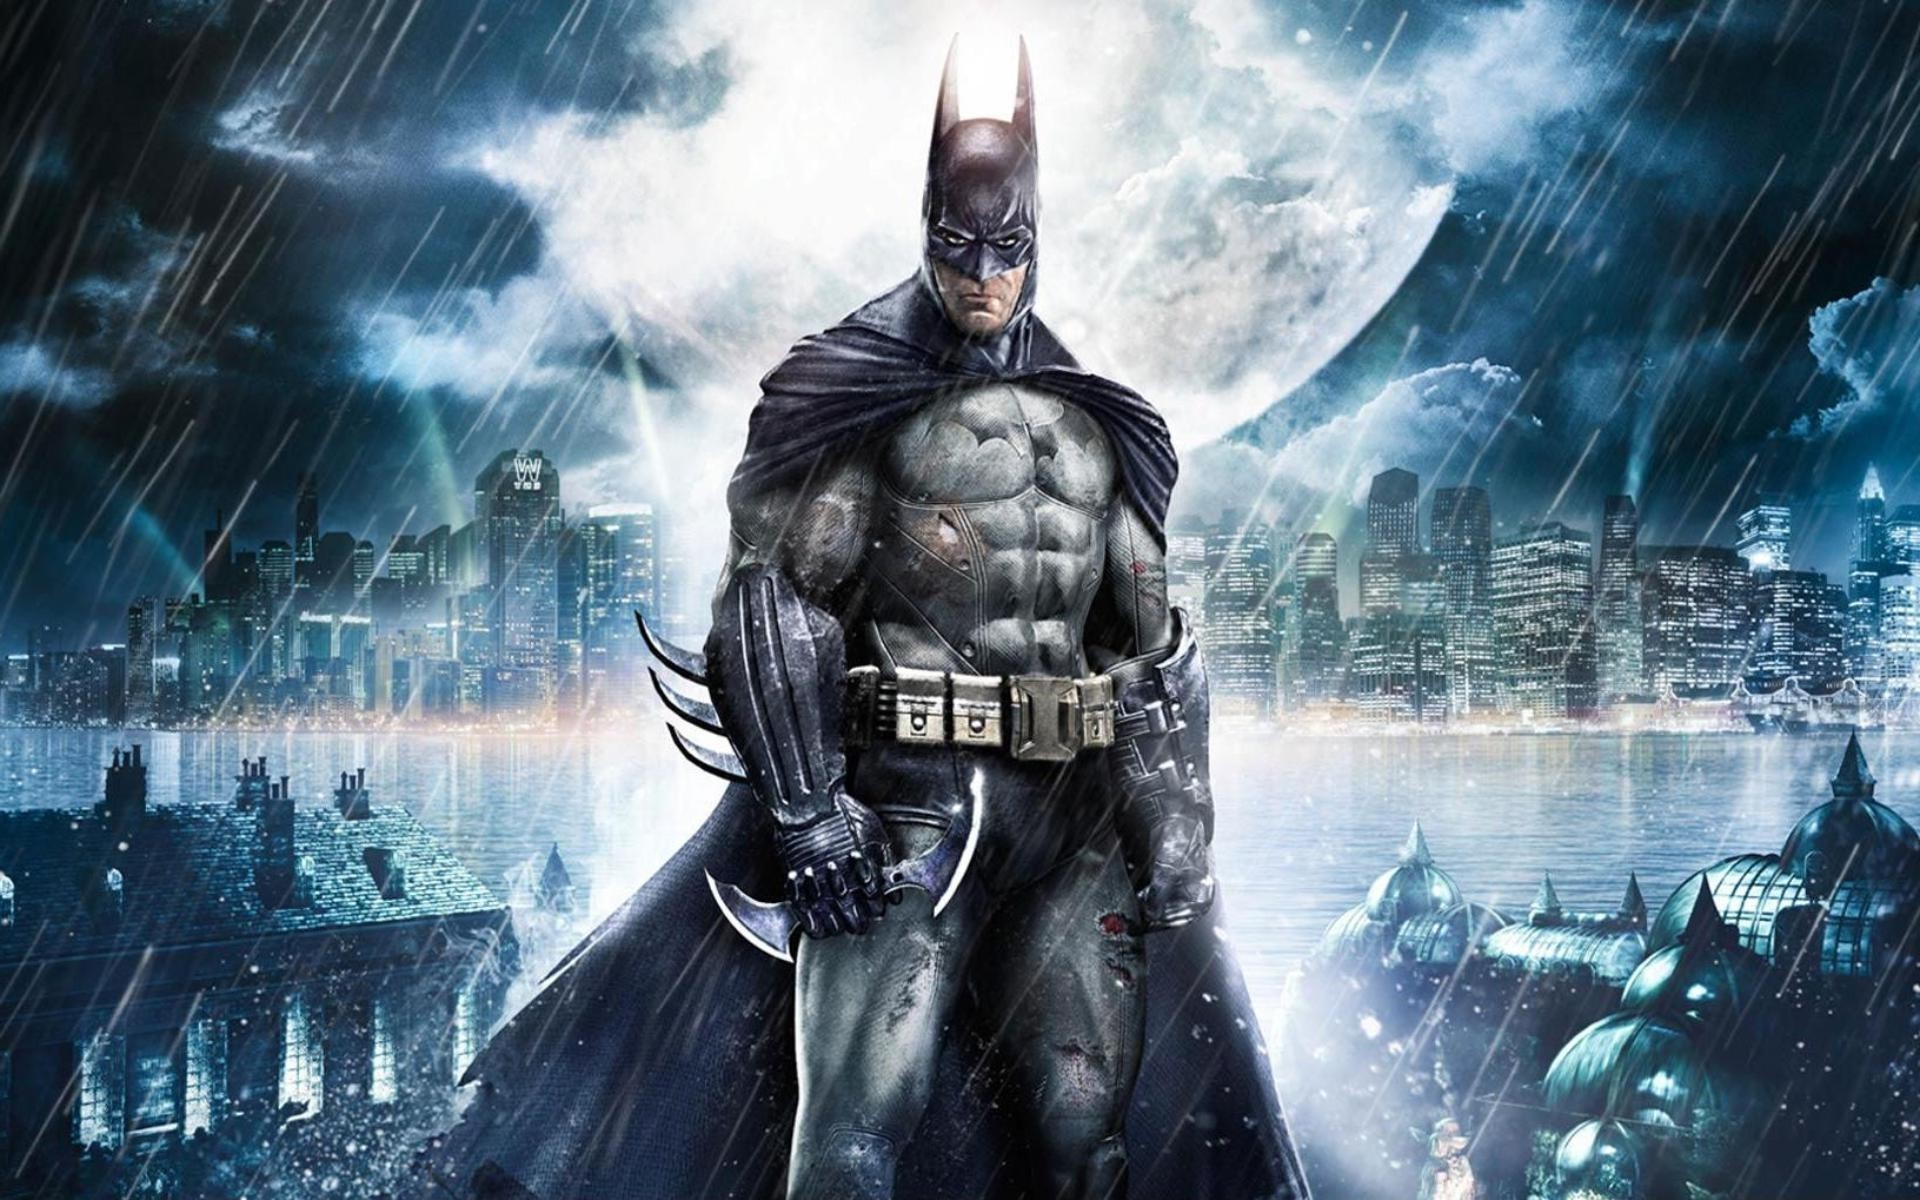 Kevin conroy confirms there wont be another batman arkham game batman arkham voltagebd